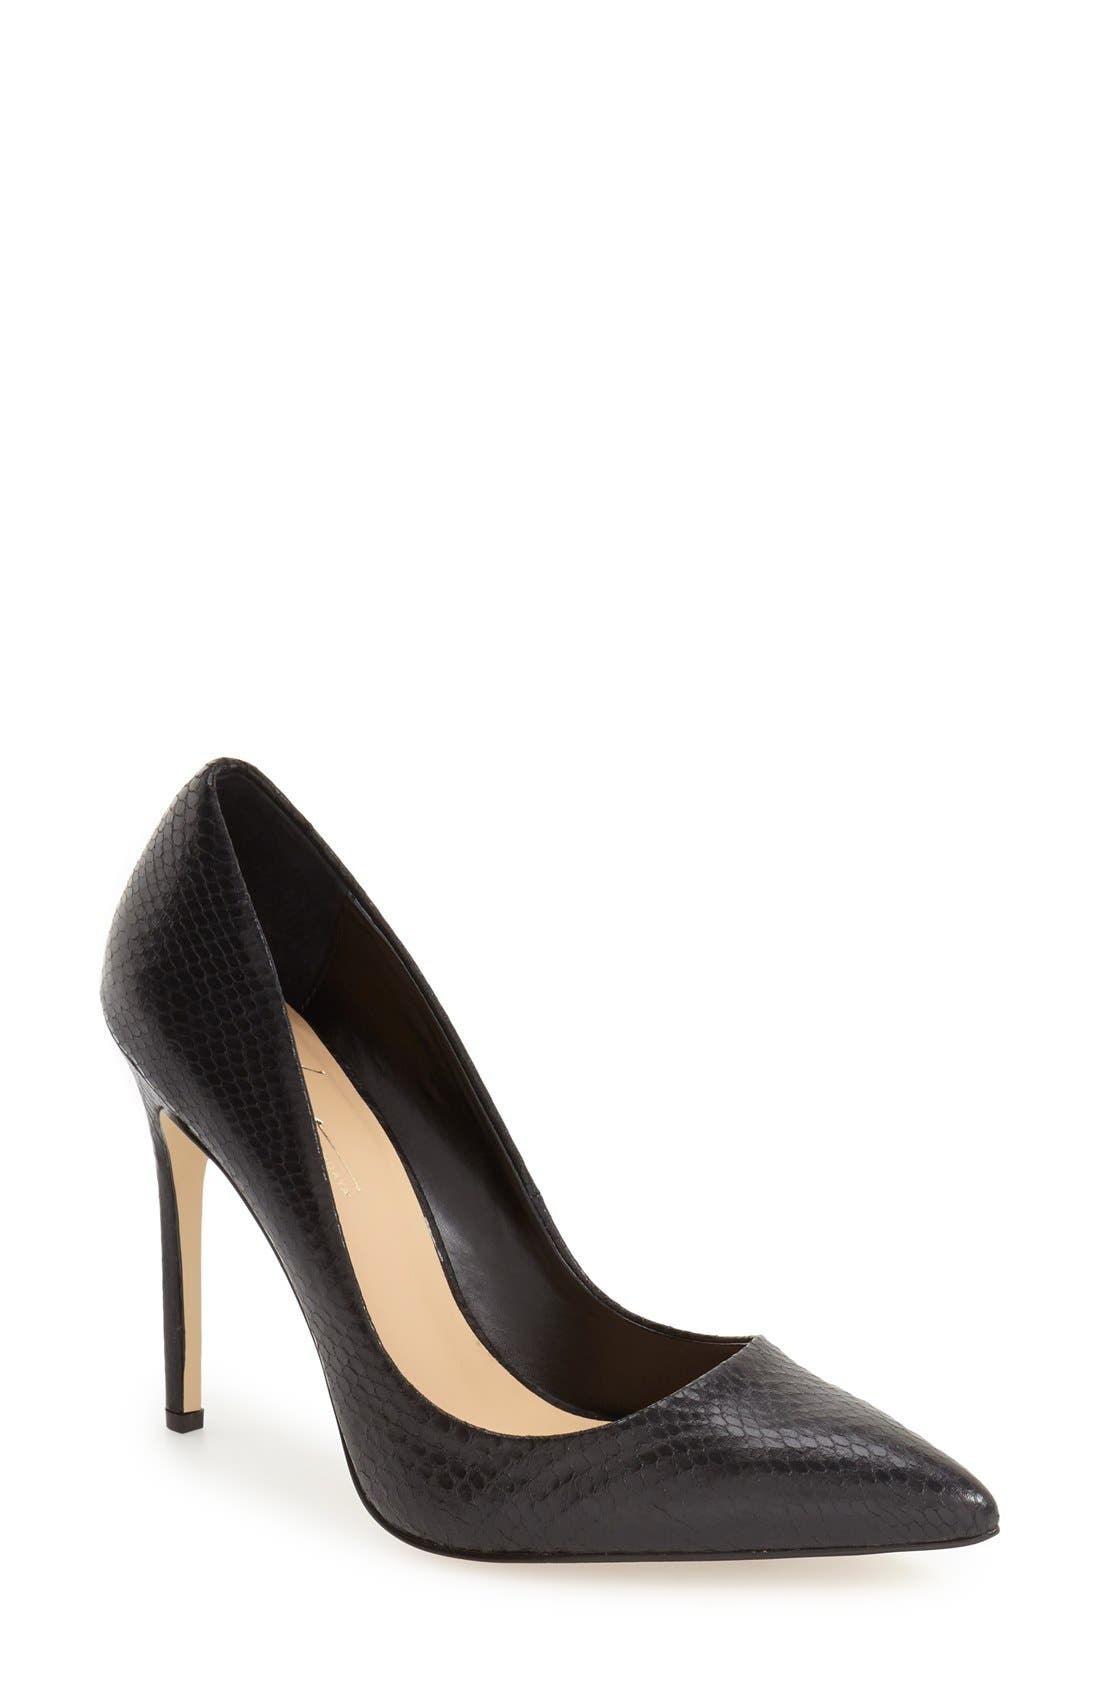 Alternate Image 1 Selected - Daya by Zendaya 'Atmore' Pump (Women)